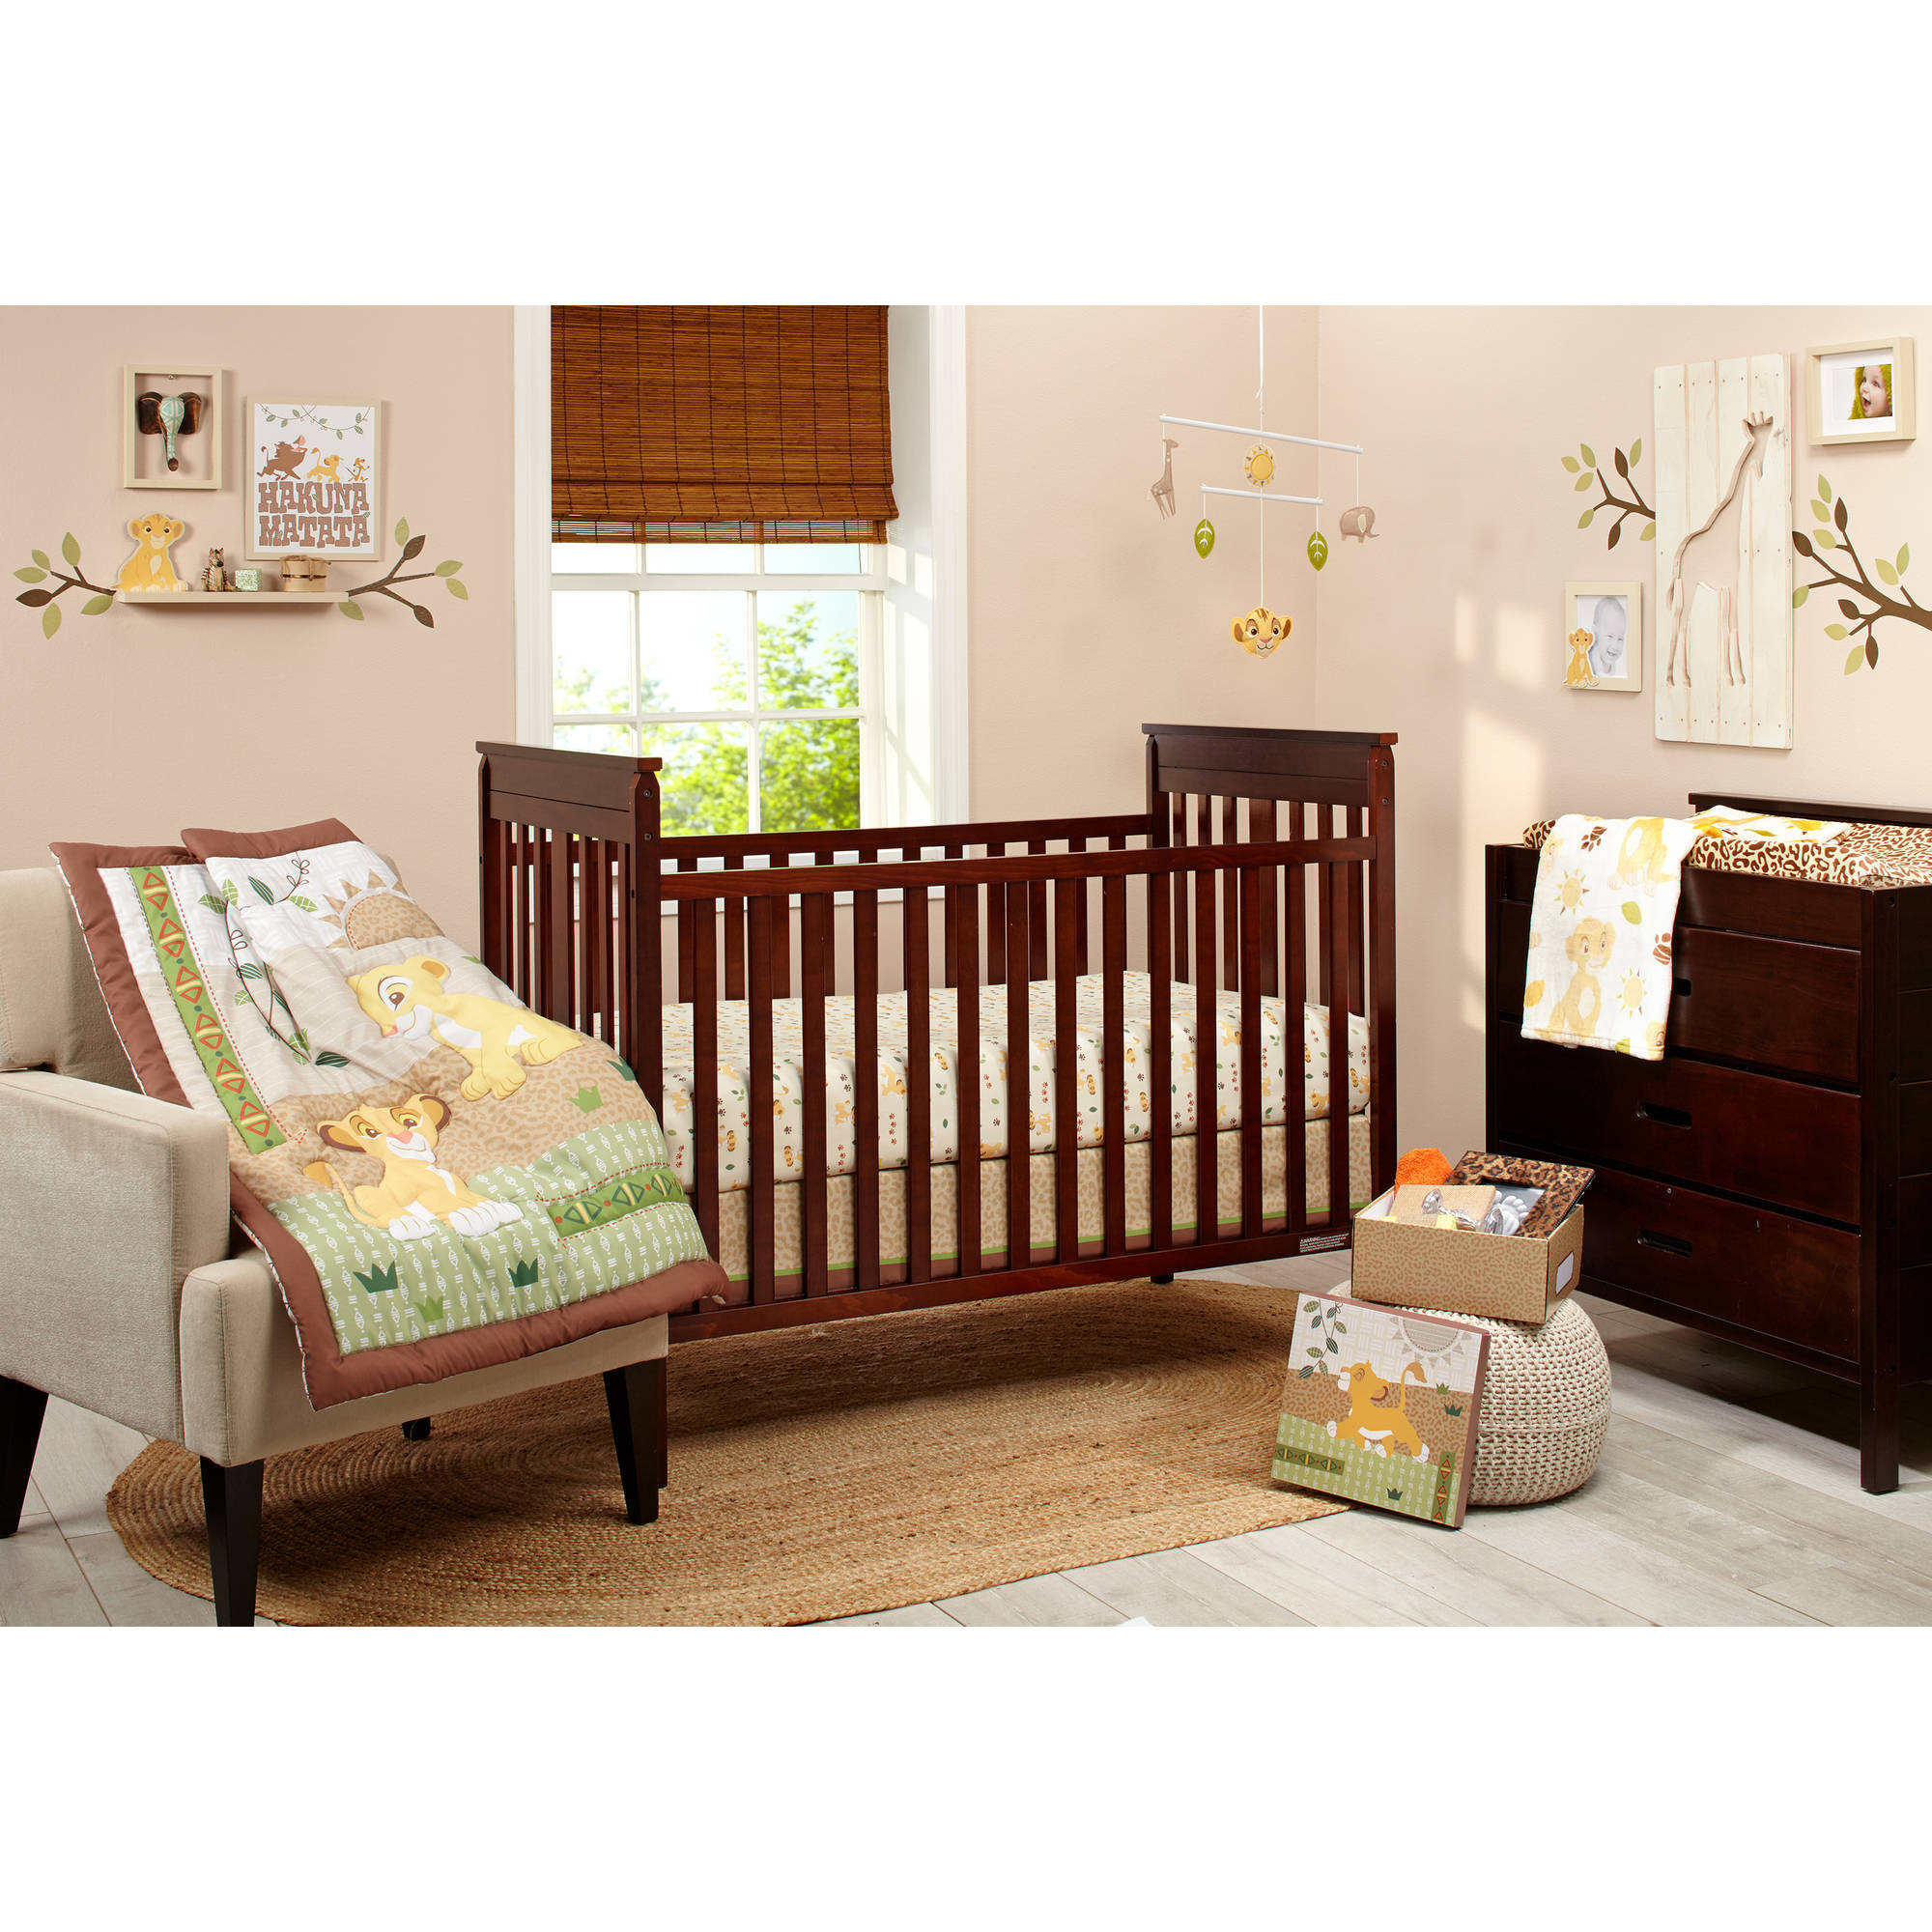 Full Crib Bedding Sets Lion King Under The Sun 4 Piece Crib Bedding Set